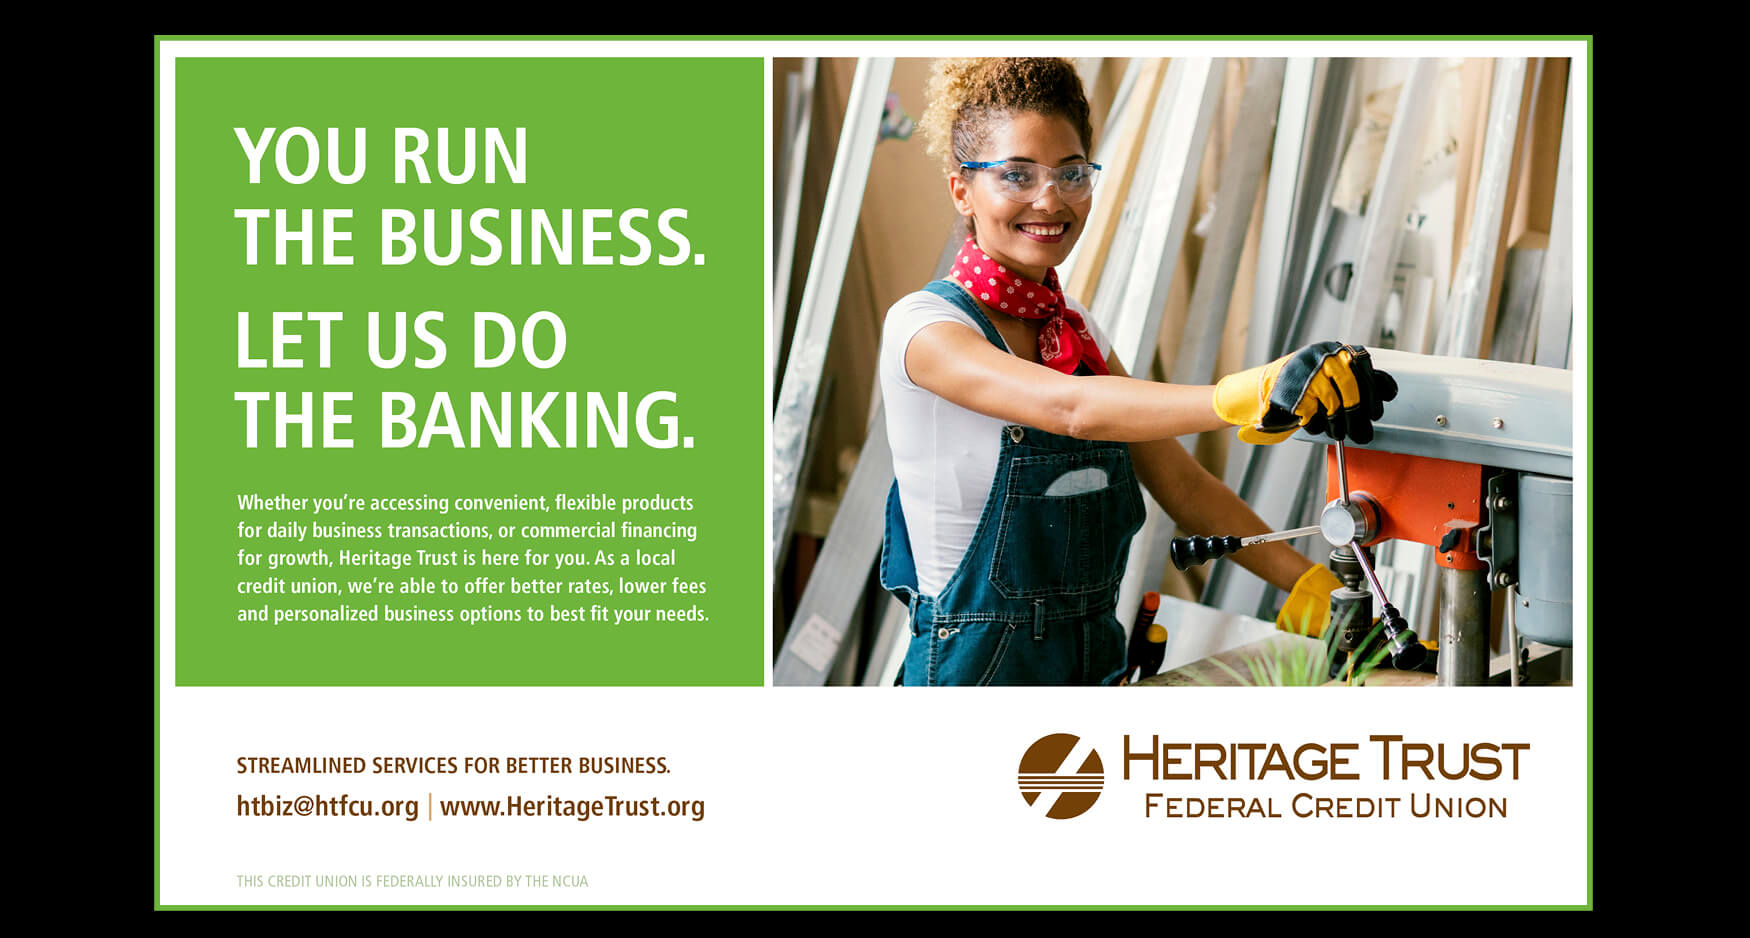 3 Print - Heritage Trust Federal Credit Union - B2B Advertising